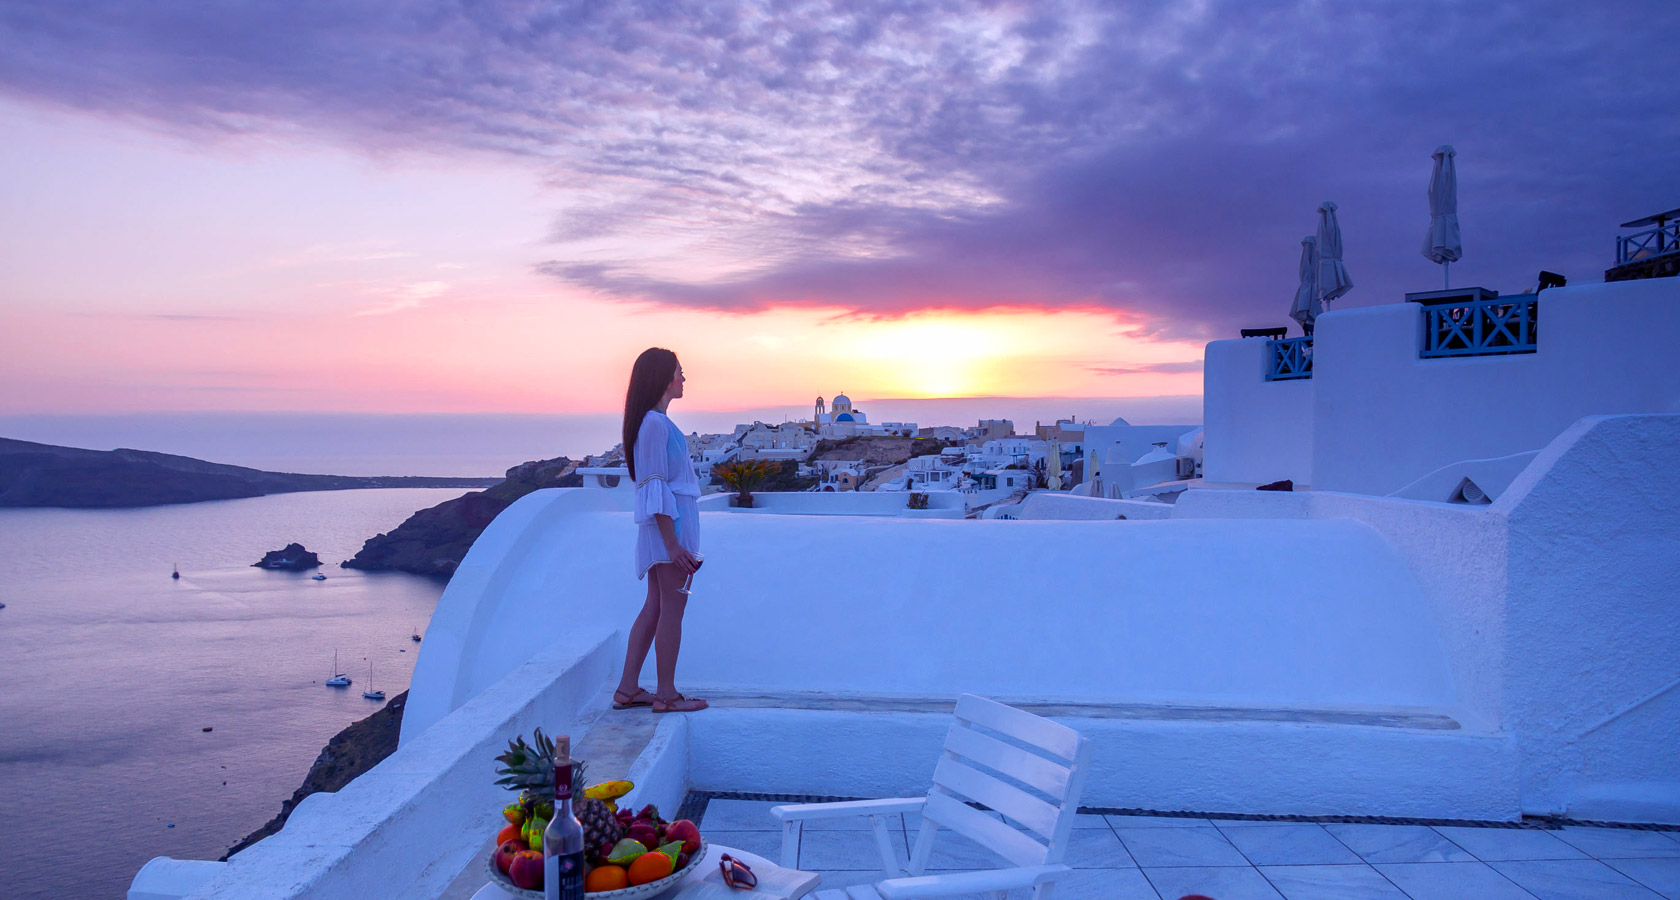 Thirea Studios Oia Santorini – Sunset